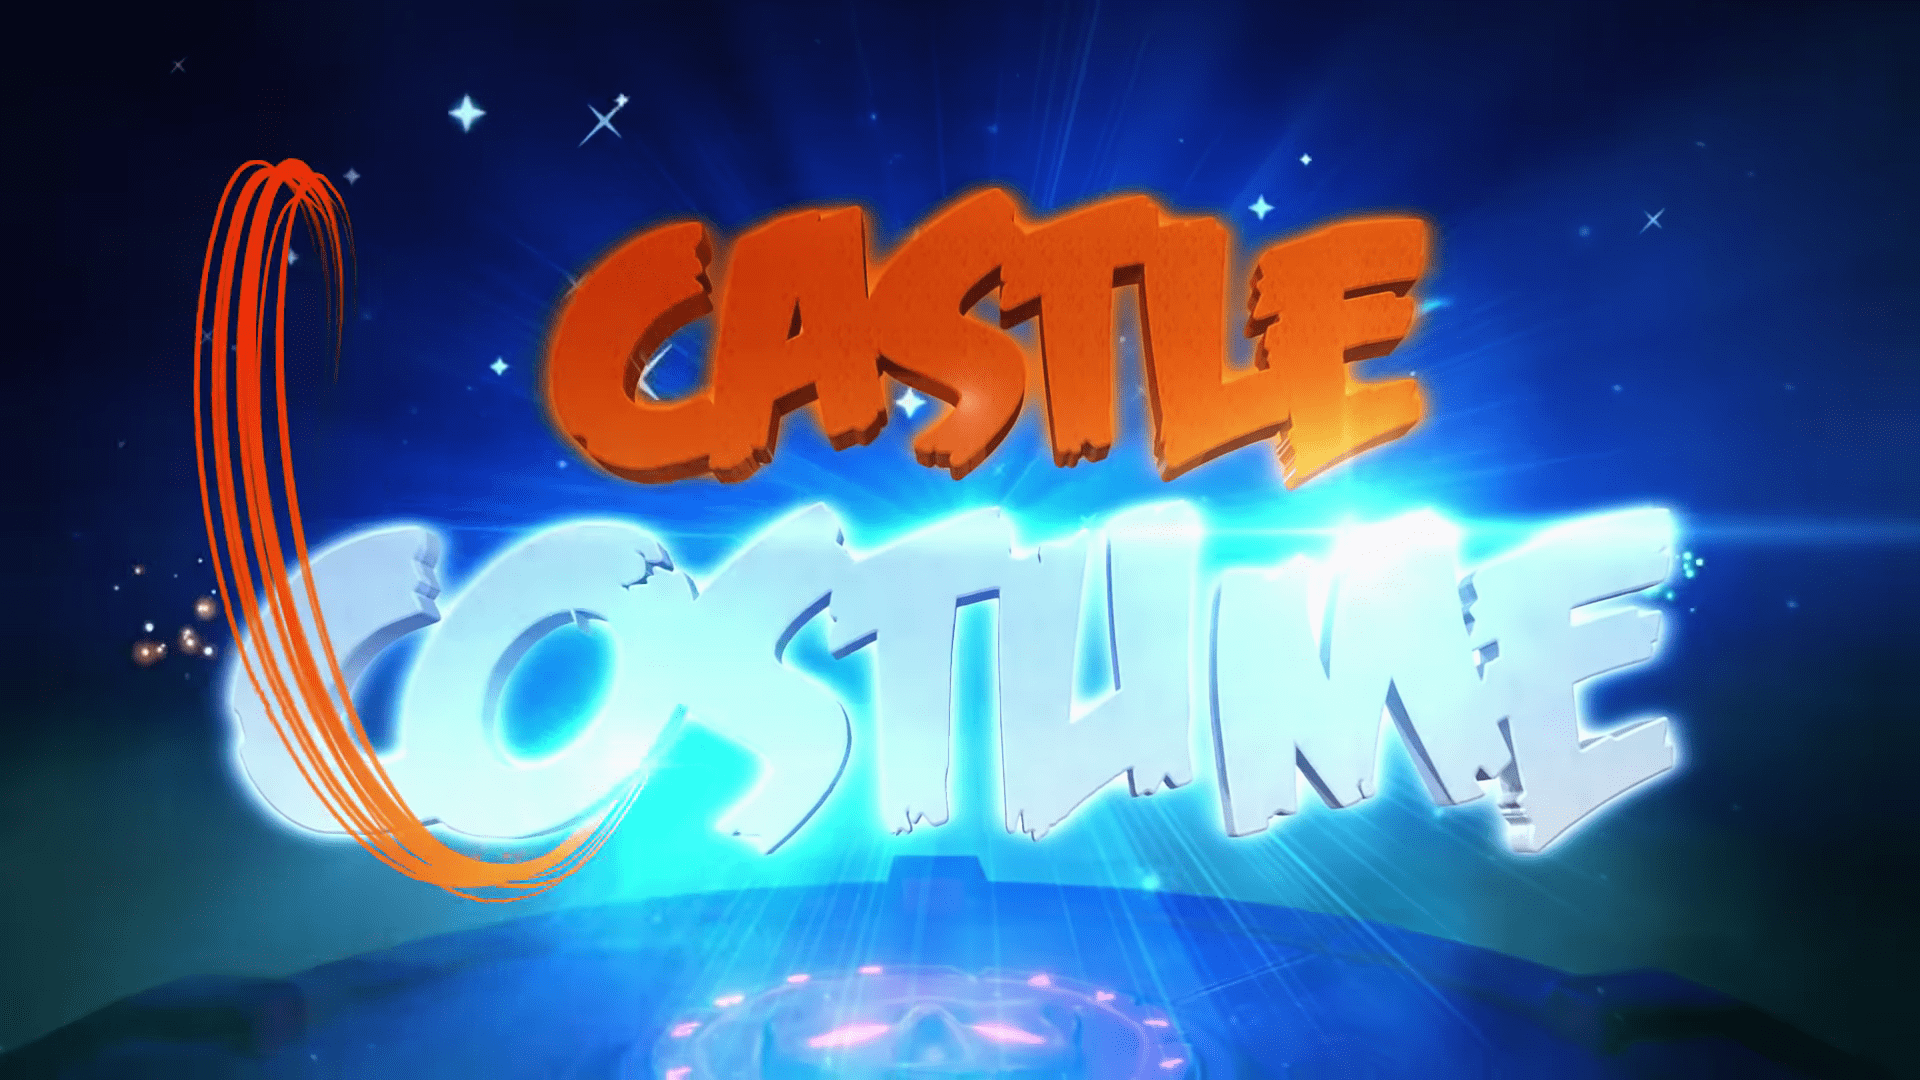 Halloween-Themed Platformer Castle Costume Coming Exclusively To PlayStation 4 This Year